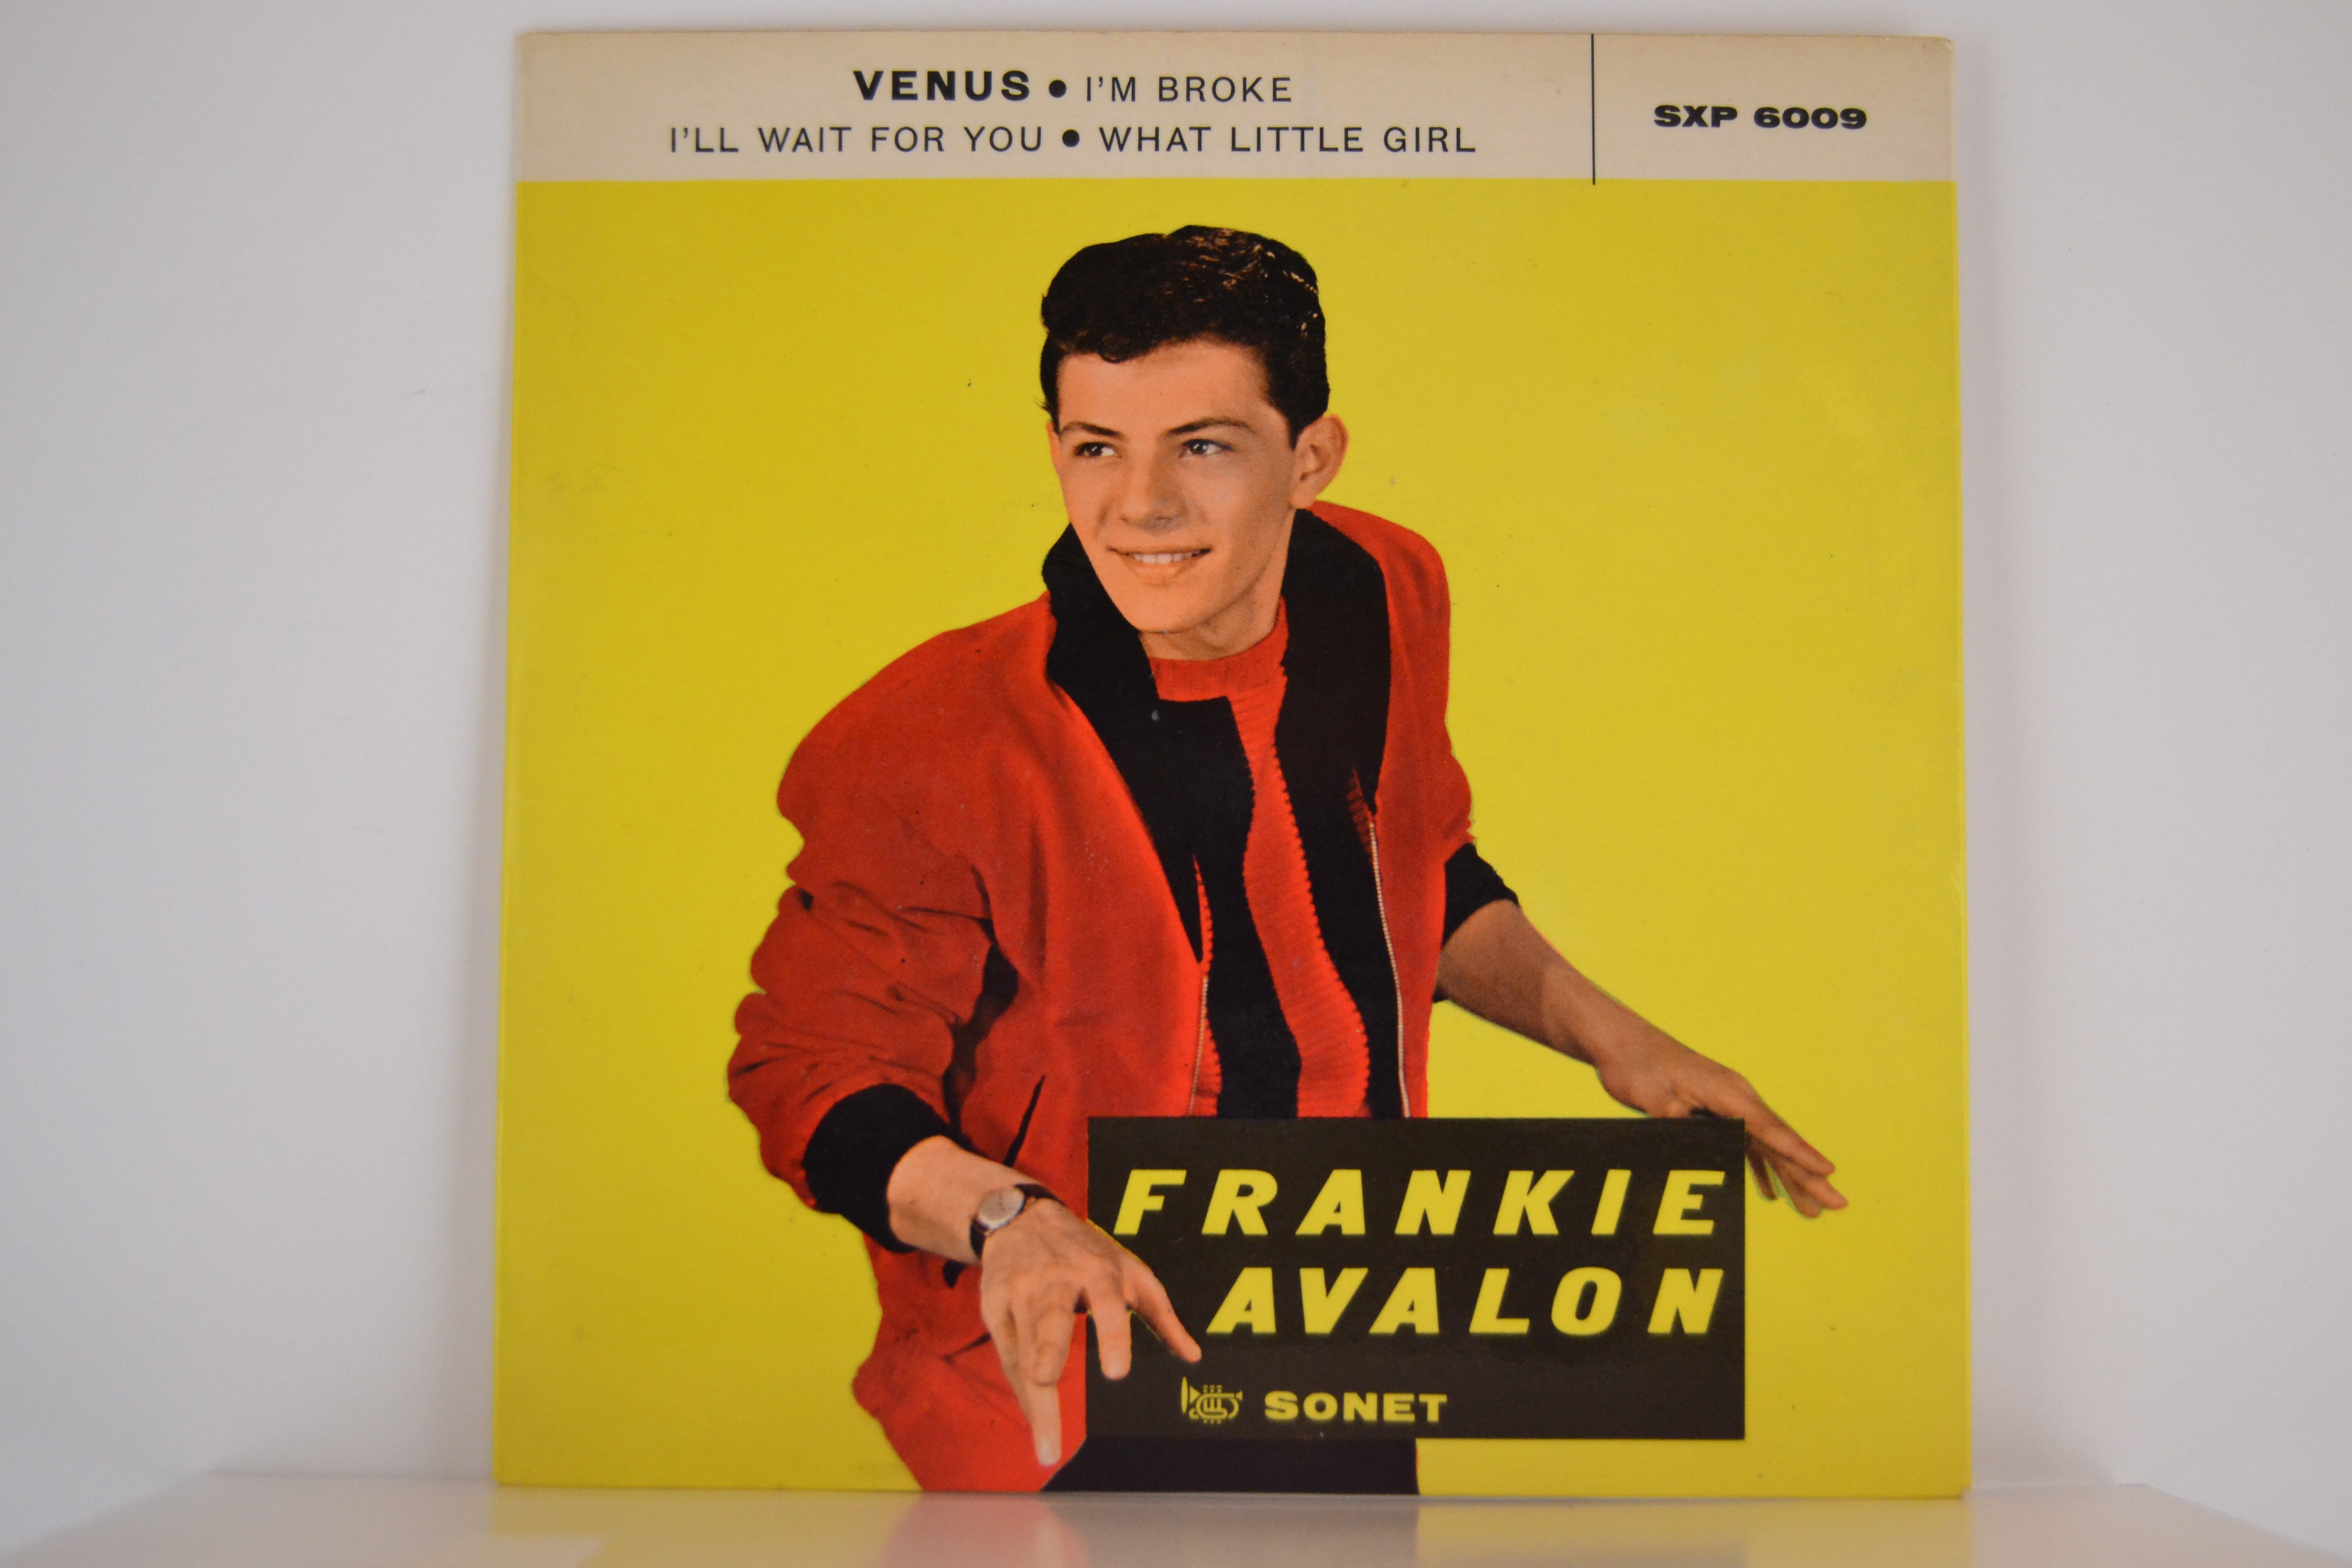 Frankie Avalon Pics with frankie avalon : (ep) venus / i'm broke / i'll wait for you / what